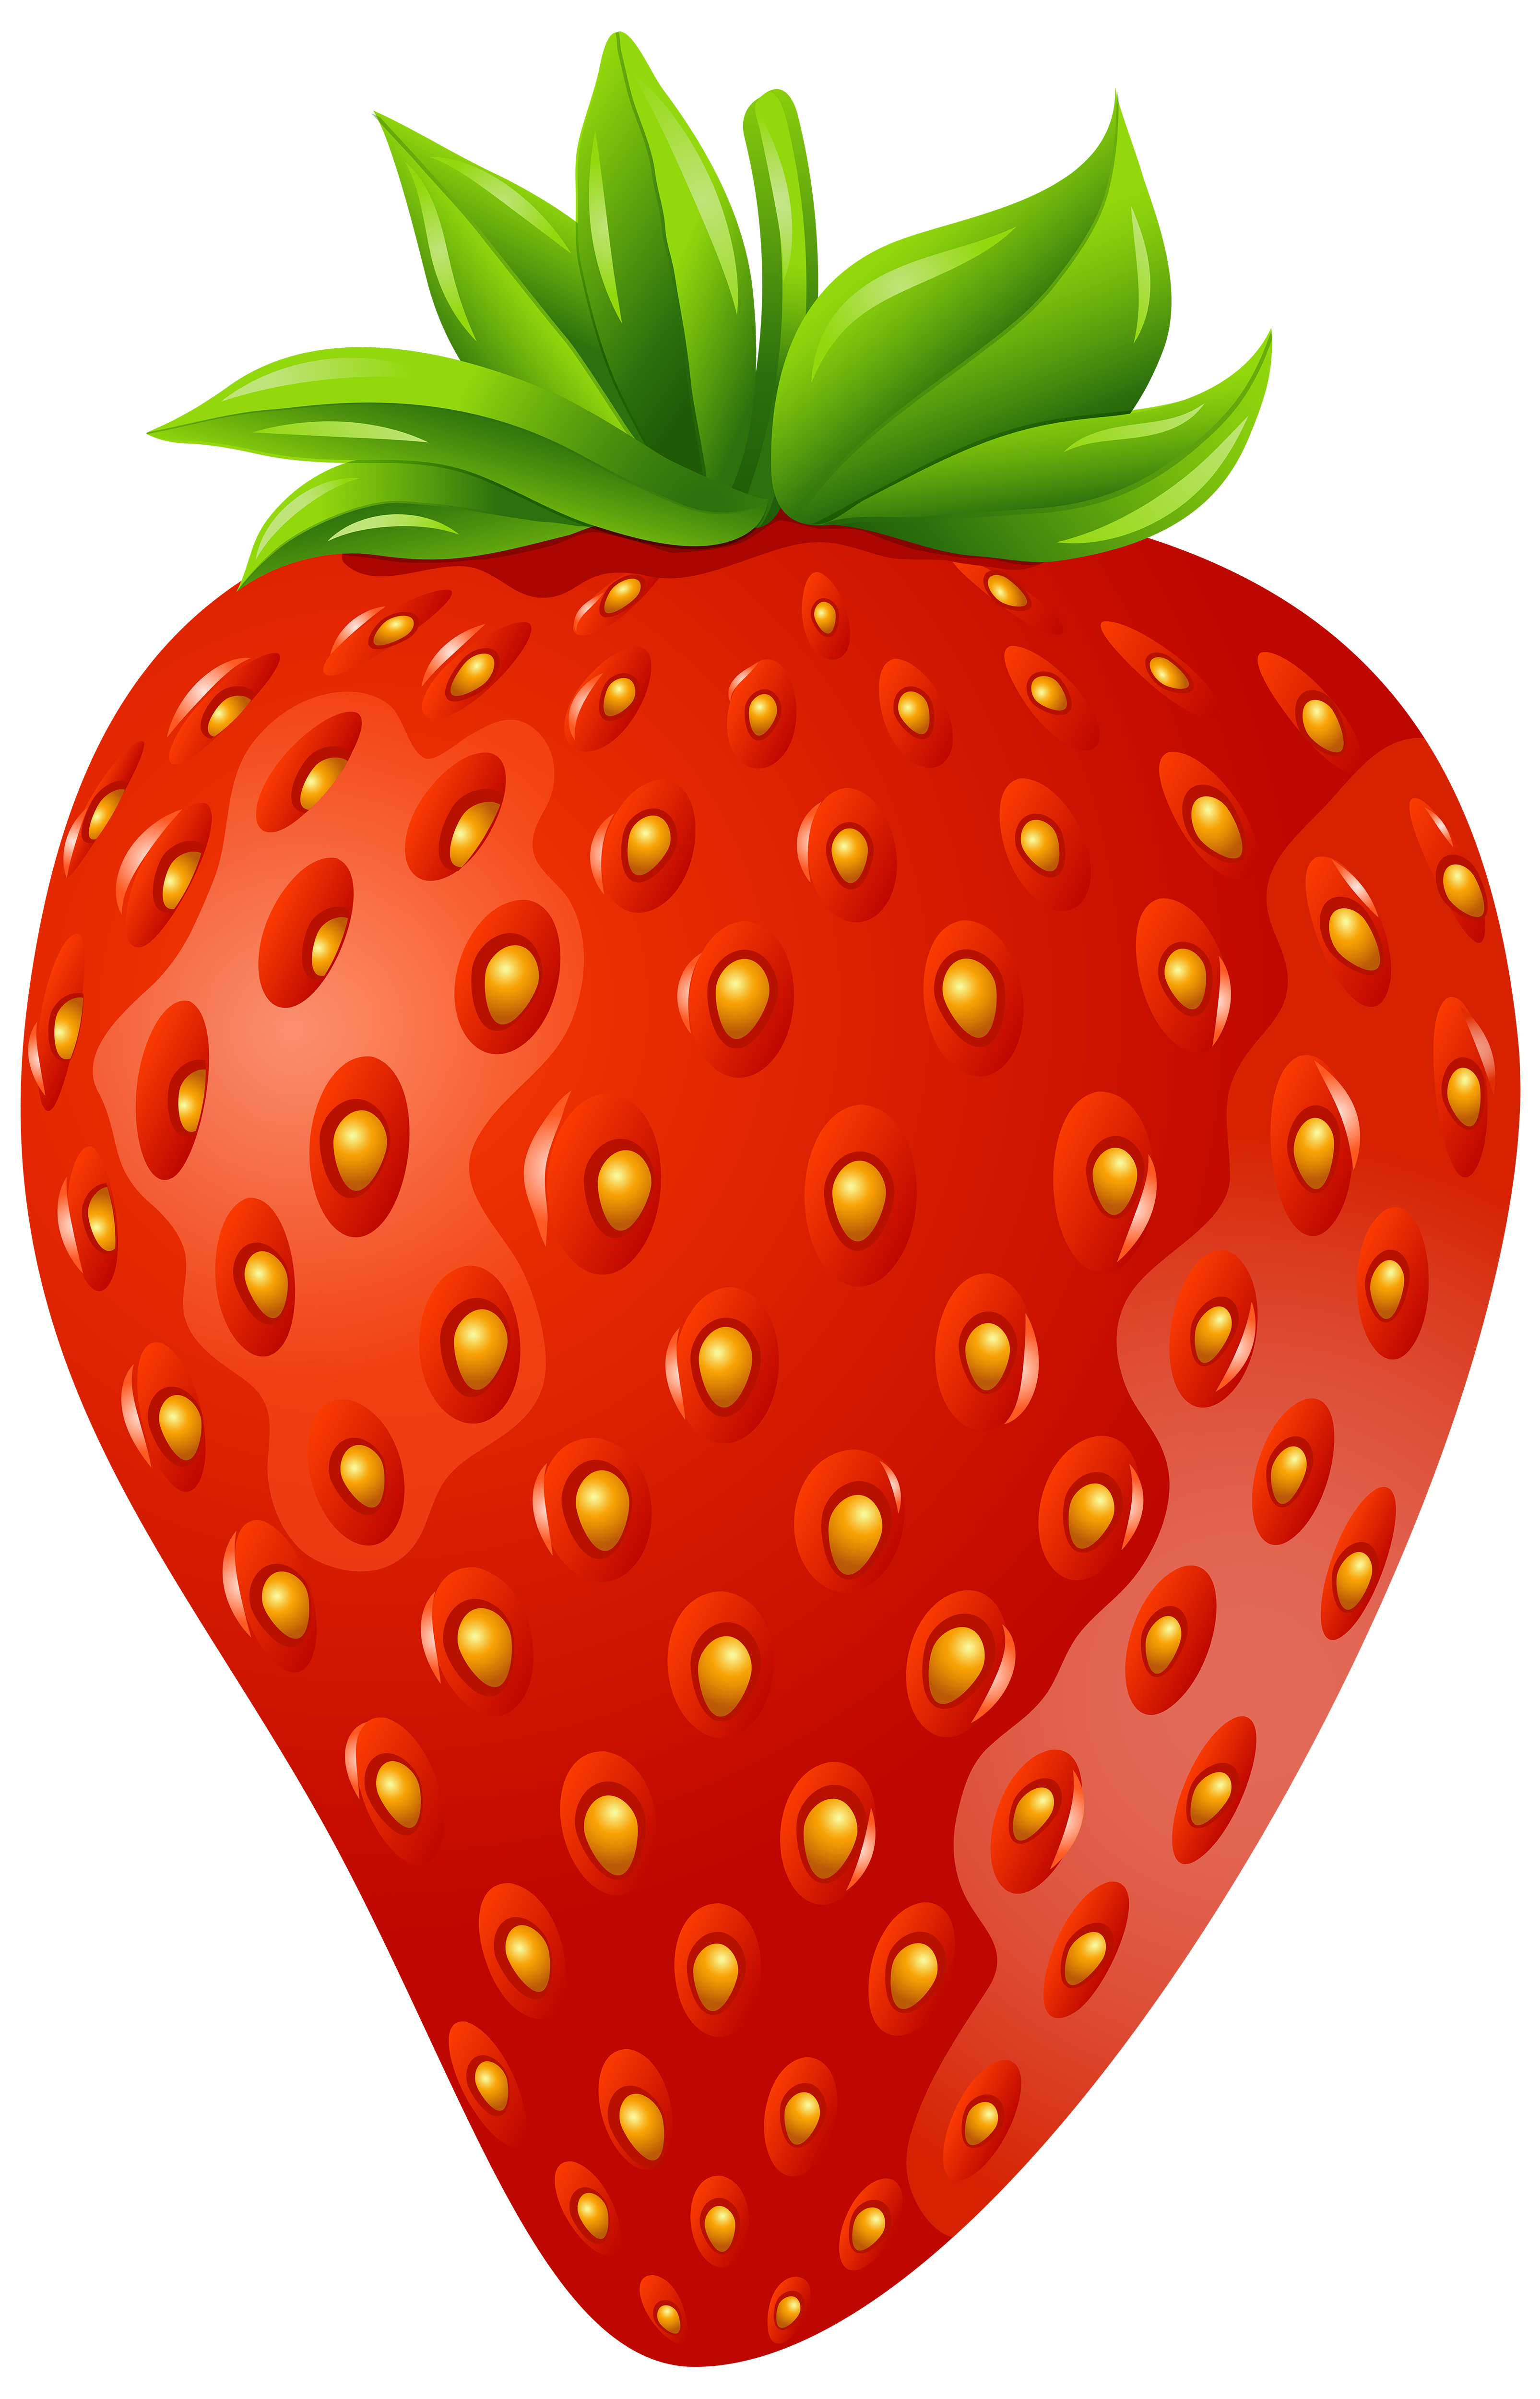 4 strawberries clipart graphic library stock Strawberry clip art free clipart images 4 - ClipartPost graphic library stock